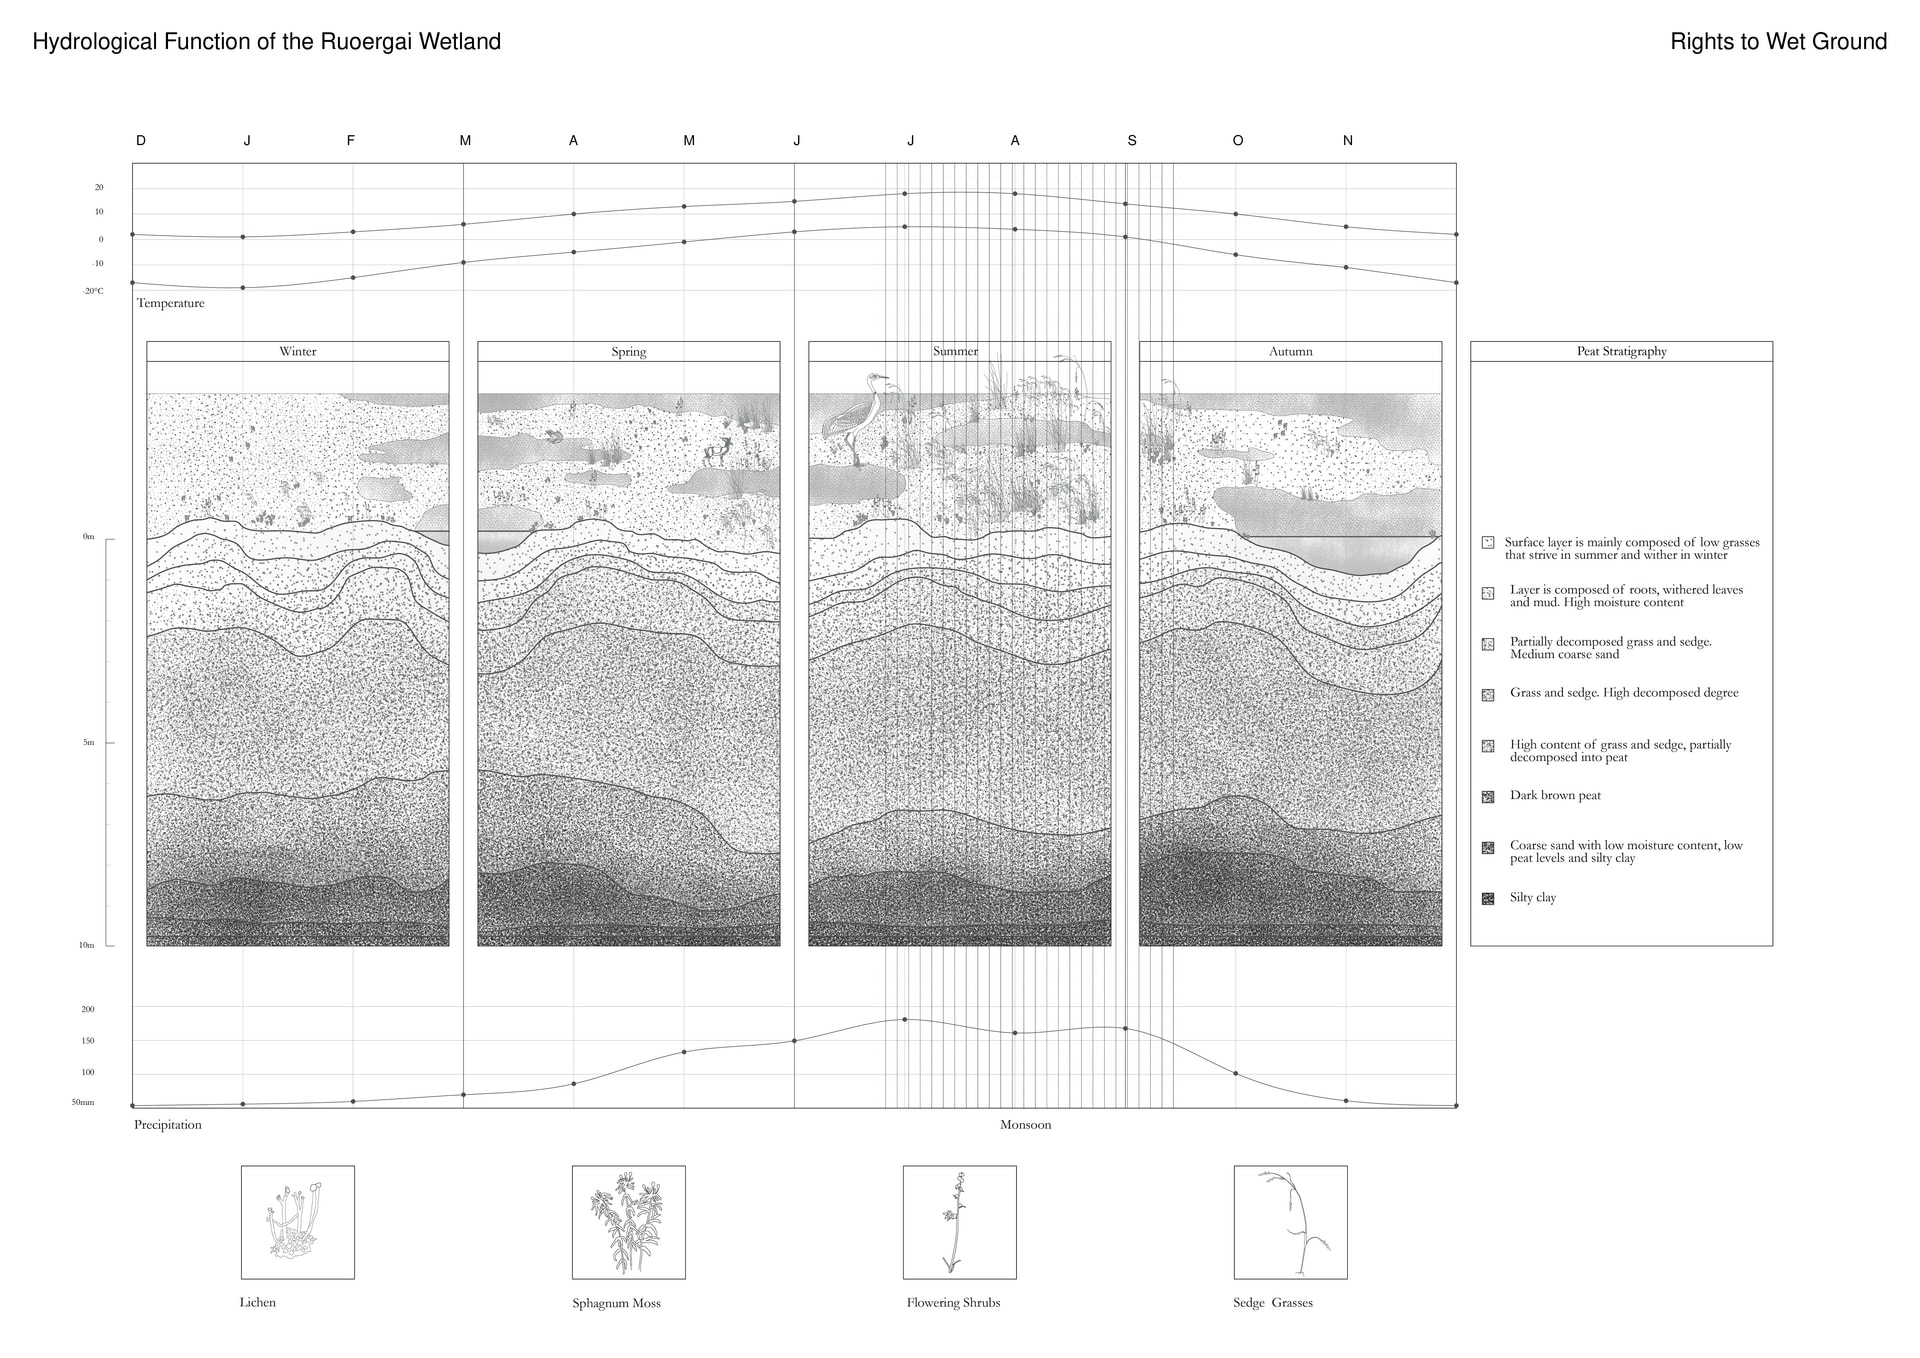 Hydrological Function of The Ruoergai Wetland